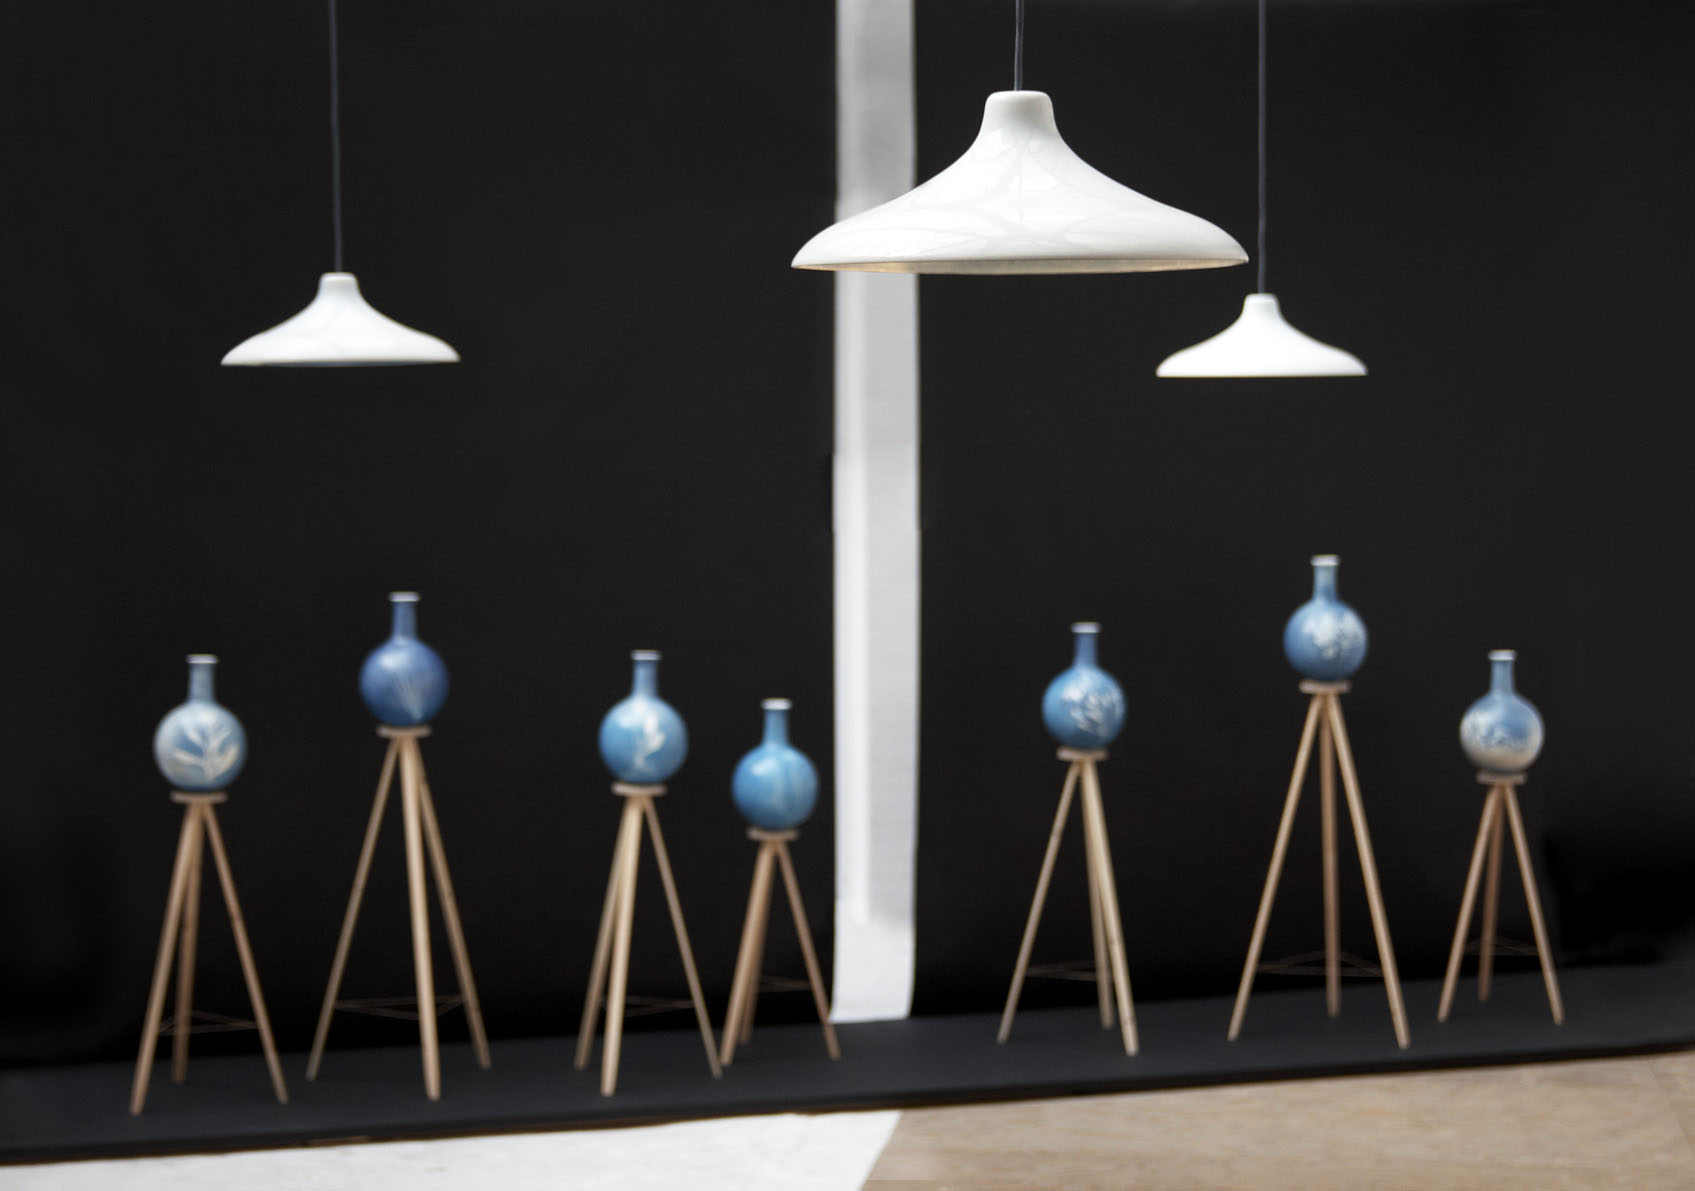 A presentation of Blueware lampshades above Blueware vases